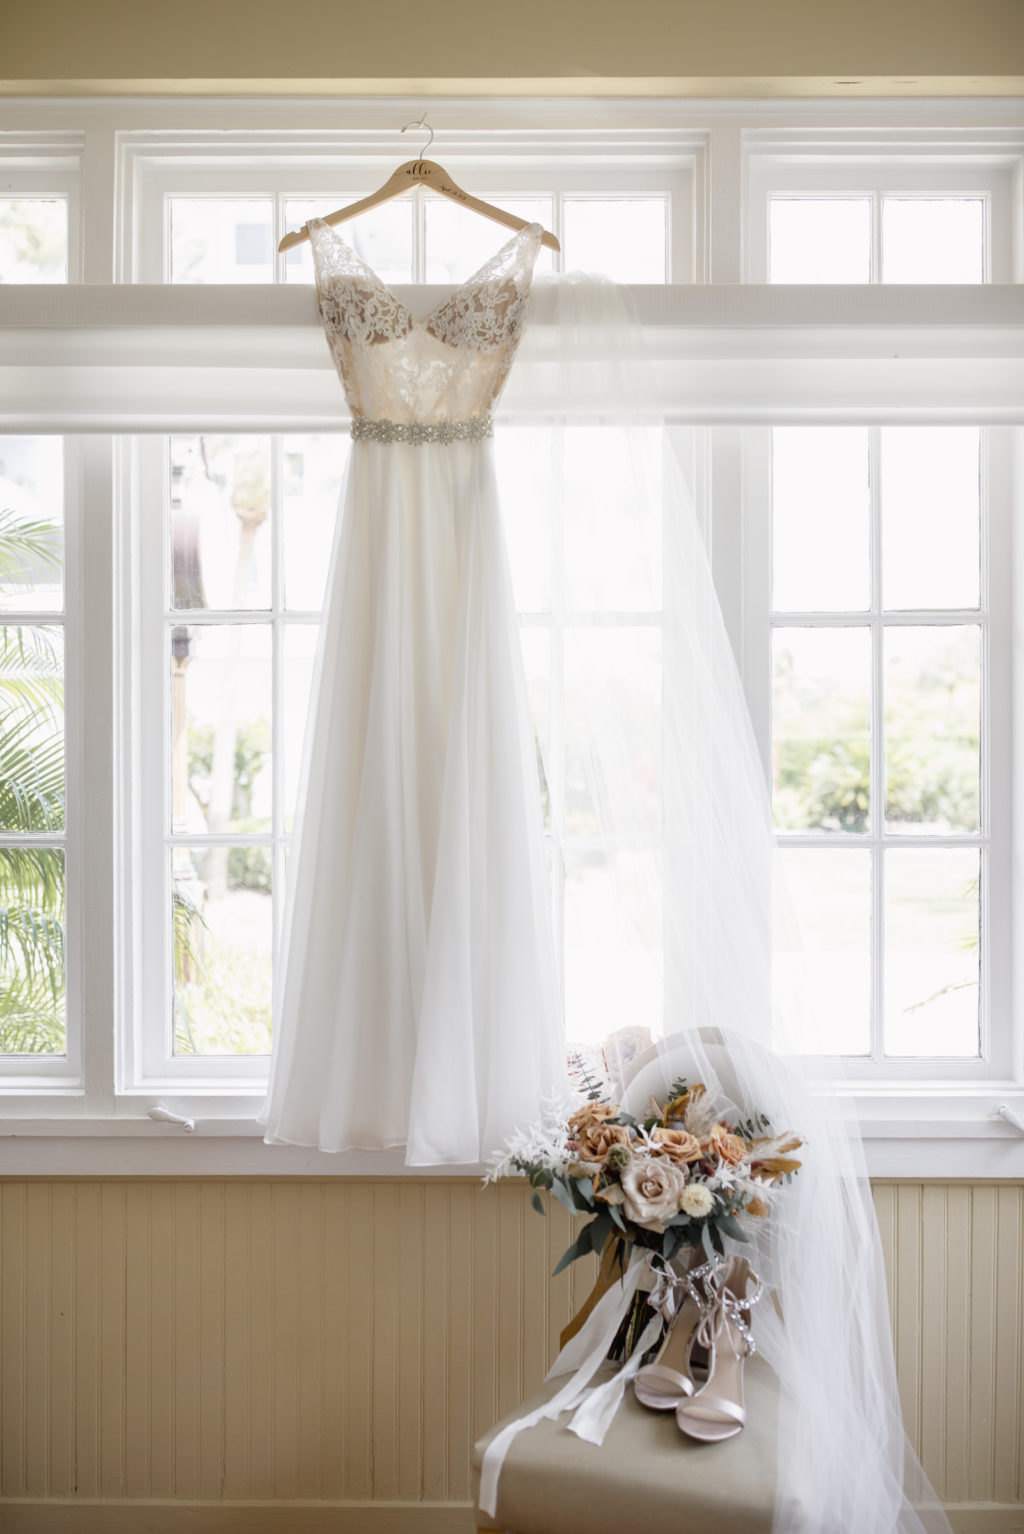 Lace Illusion Wedding Dress with Beaded Belt Detail and Flowy Train   Paloma Blanca, Overskirt Hayley Paige